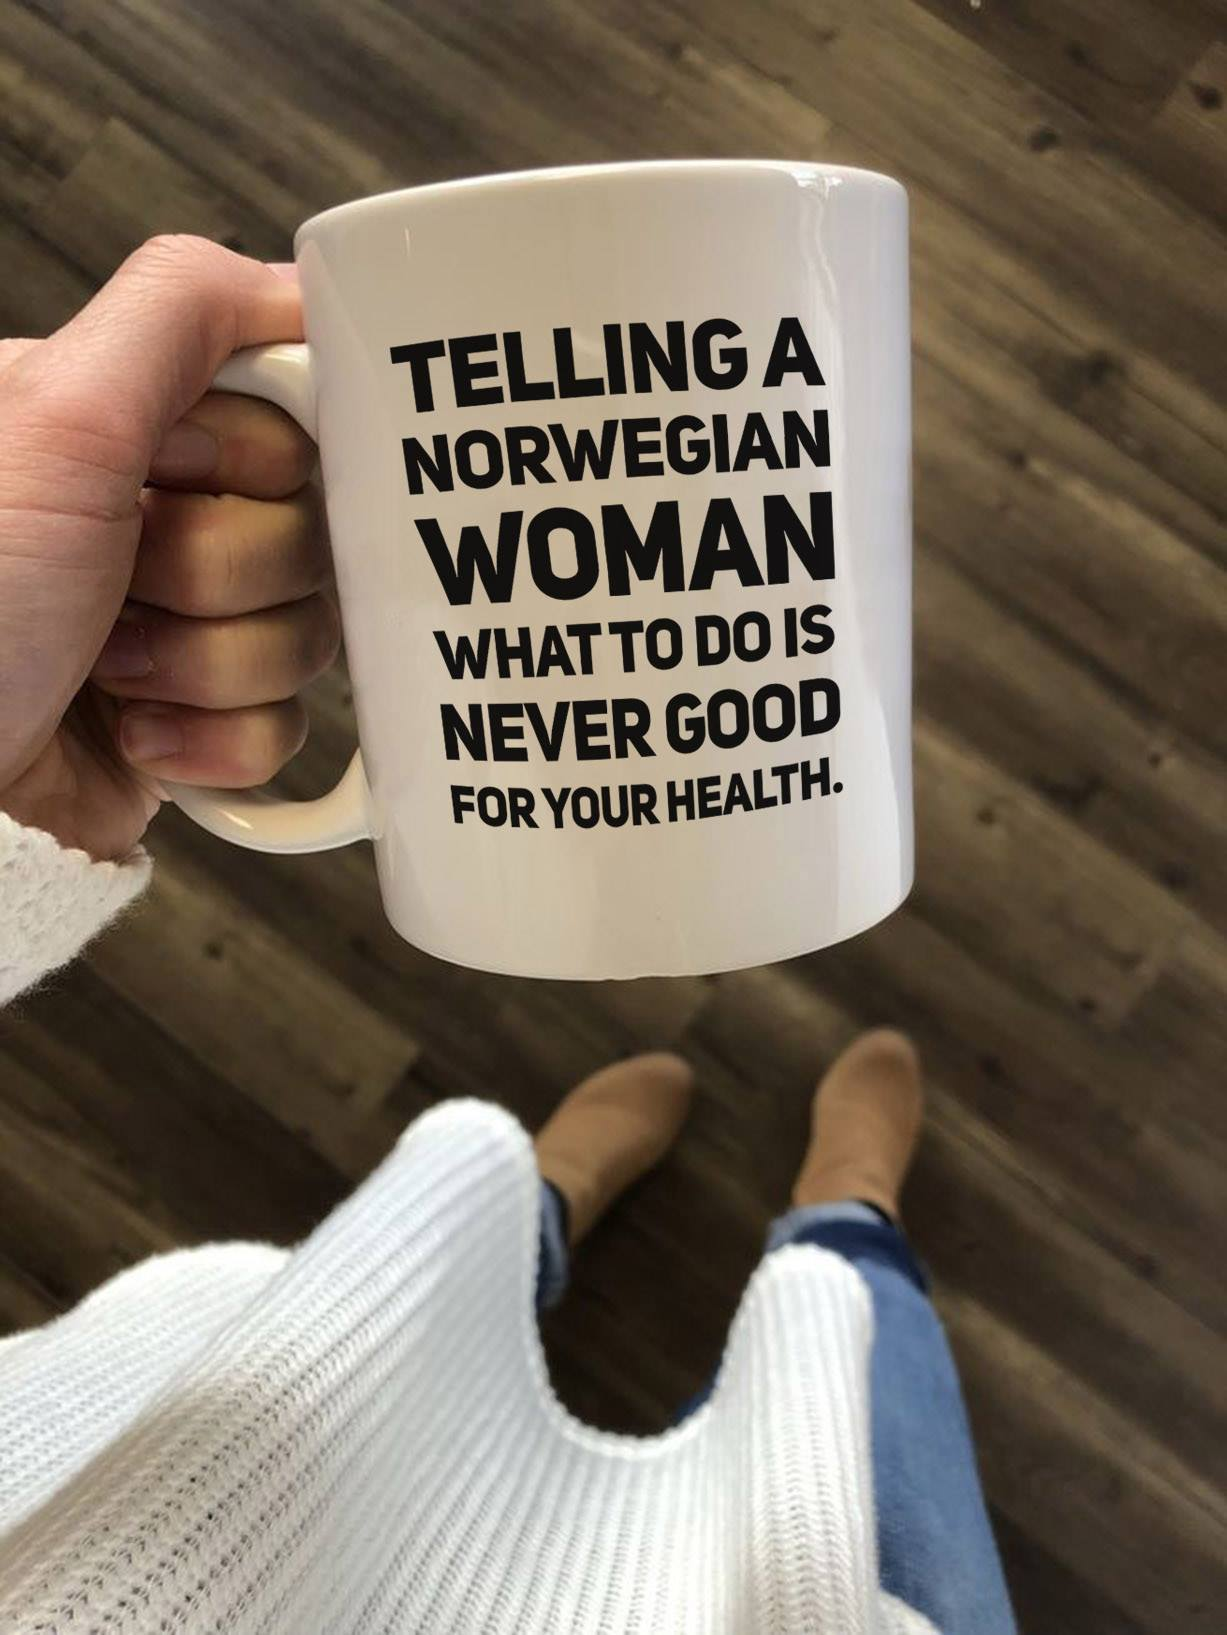 Norway Mug Telling A Norwegian Woman Never Good For Your Health